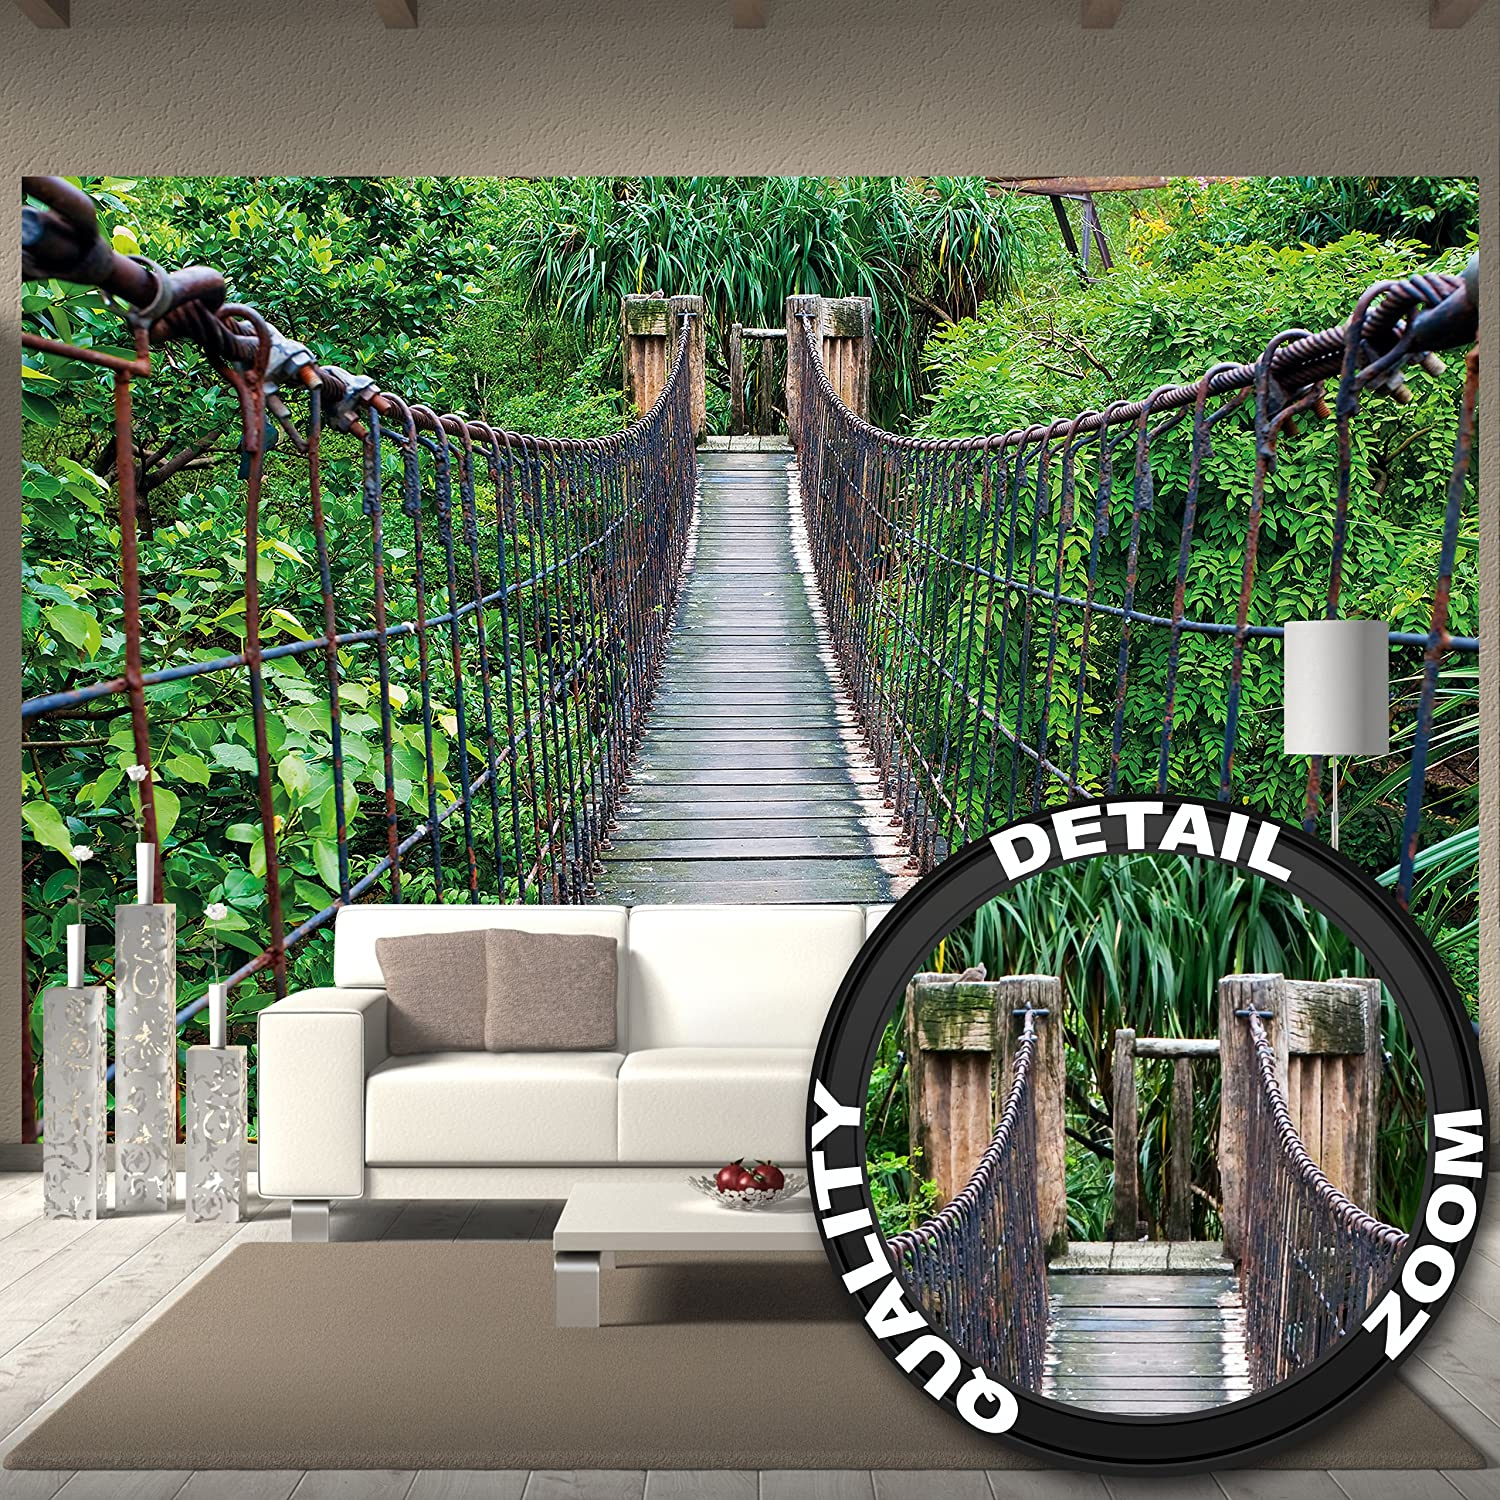 rope bridge jungle xxl mural poster 132 3 inch x 93 7 ebay. Black Bedroom Furniture Sets. Home Design Ideas